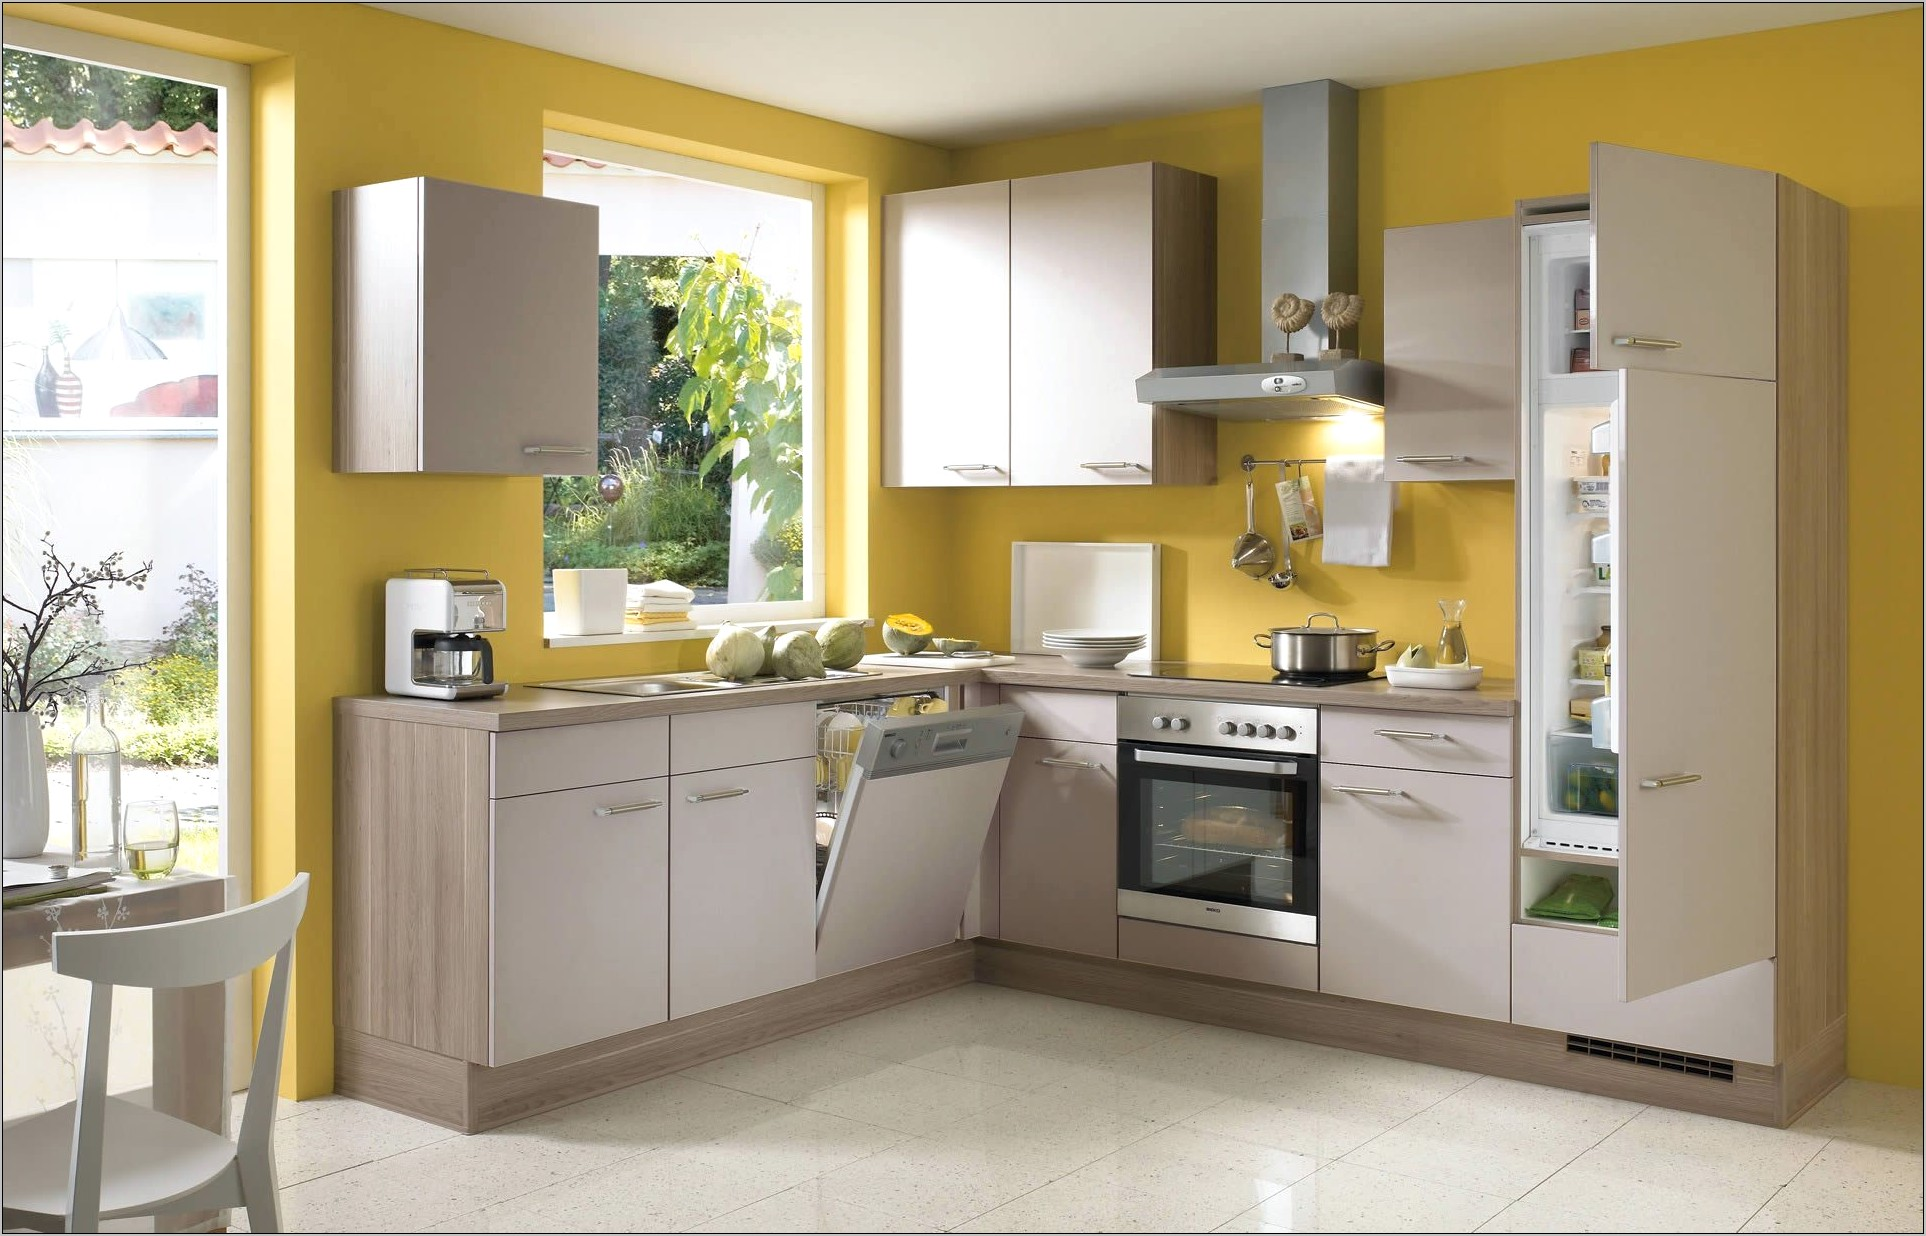 Wall Decor For Kitchen In Yellow